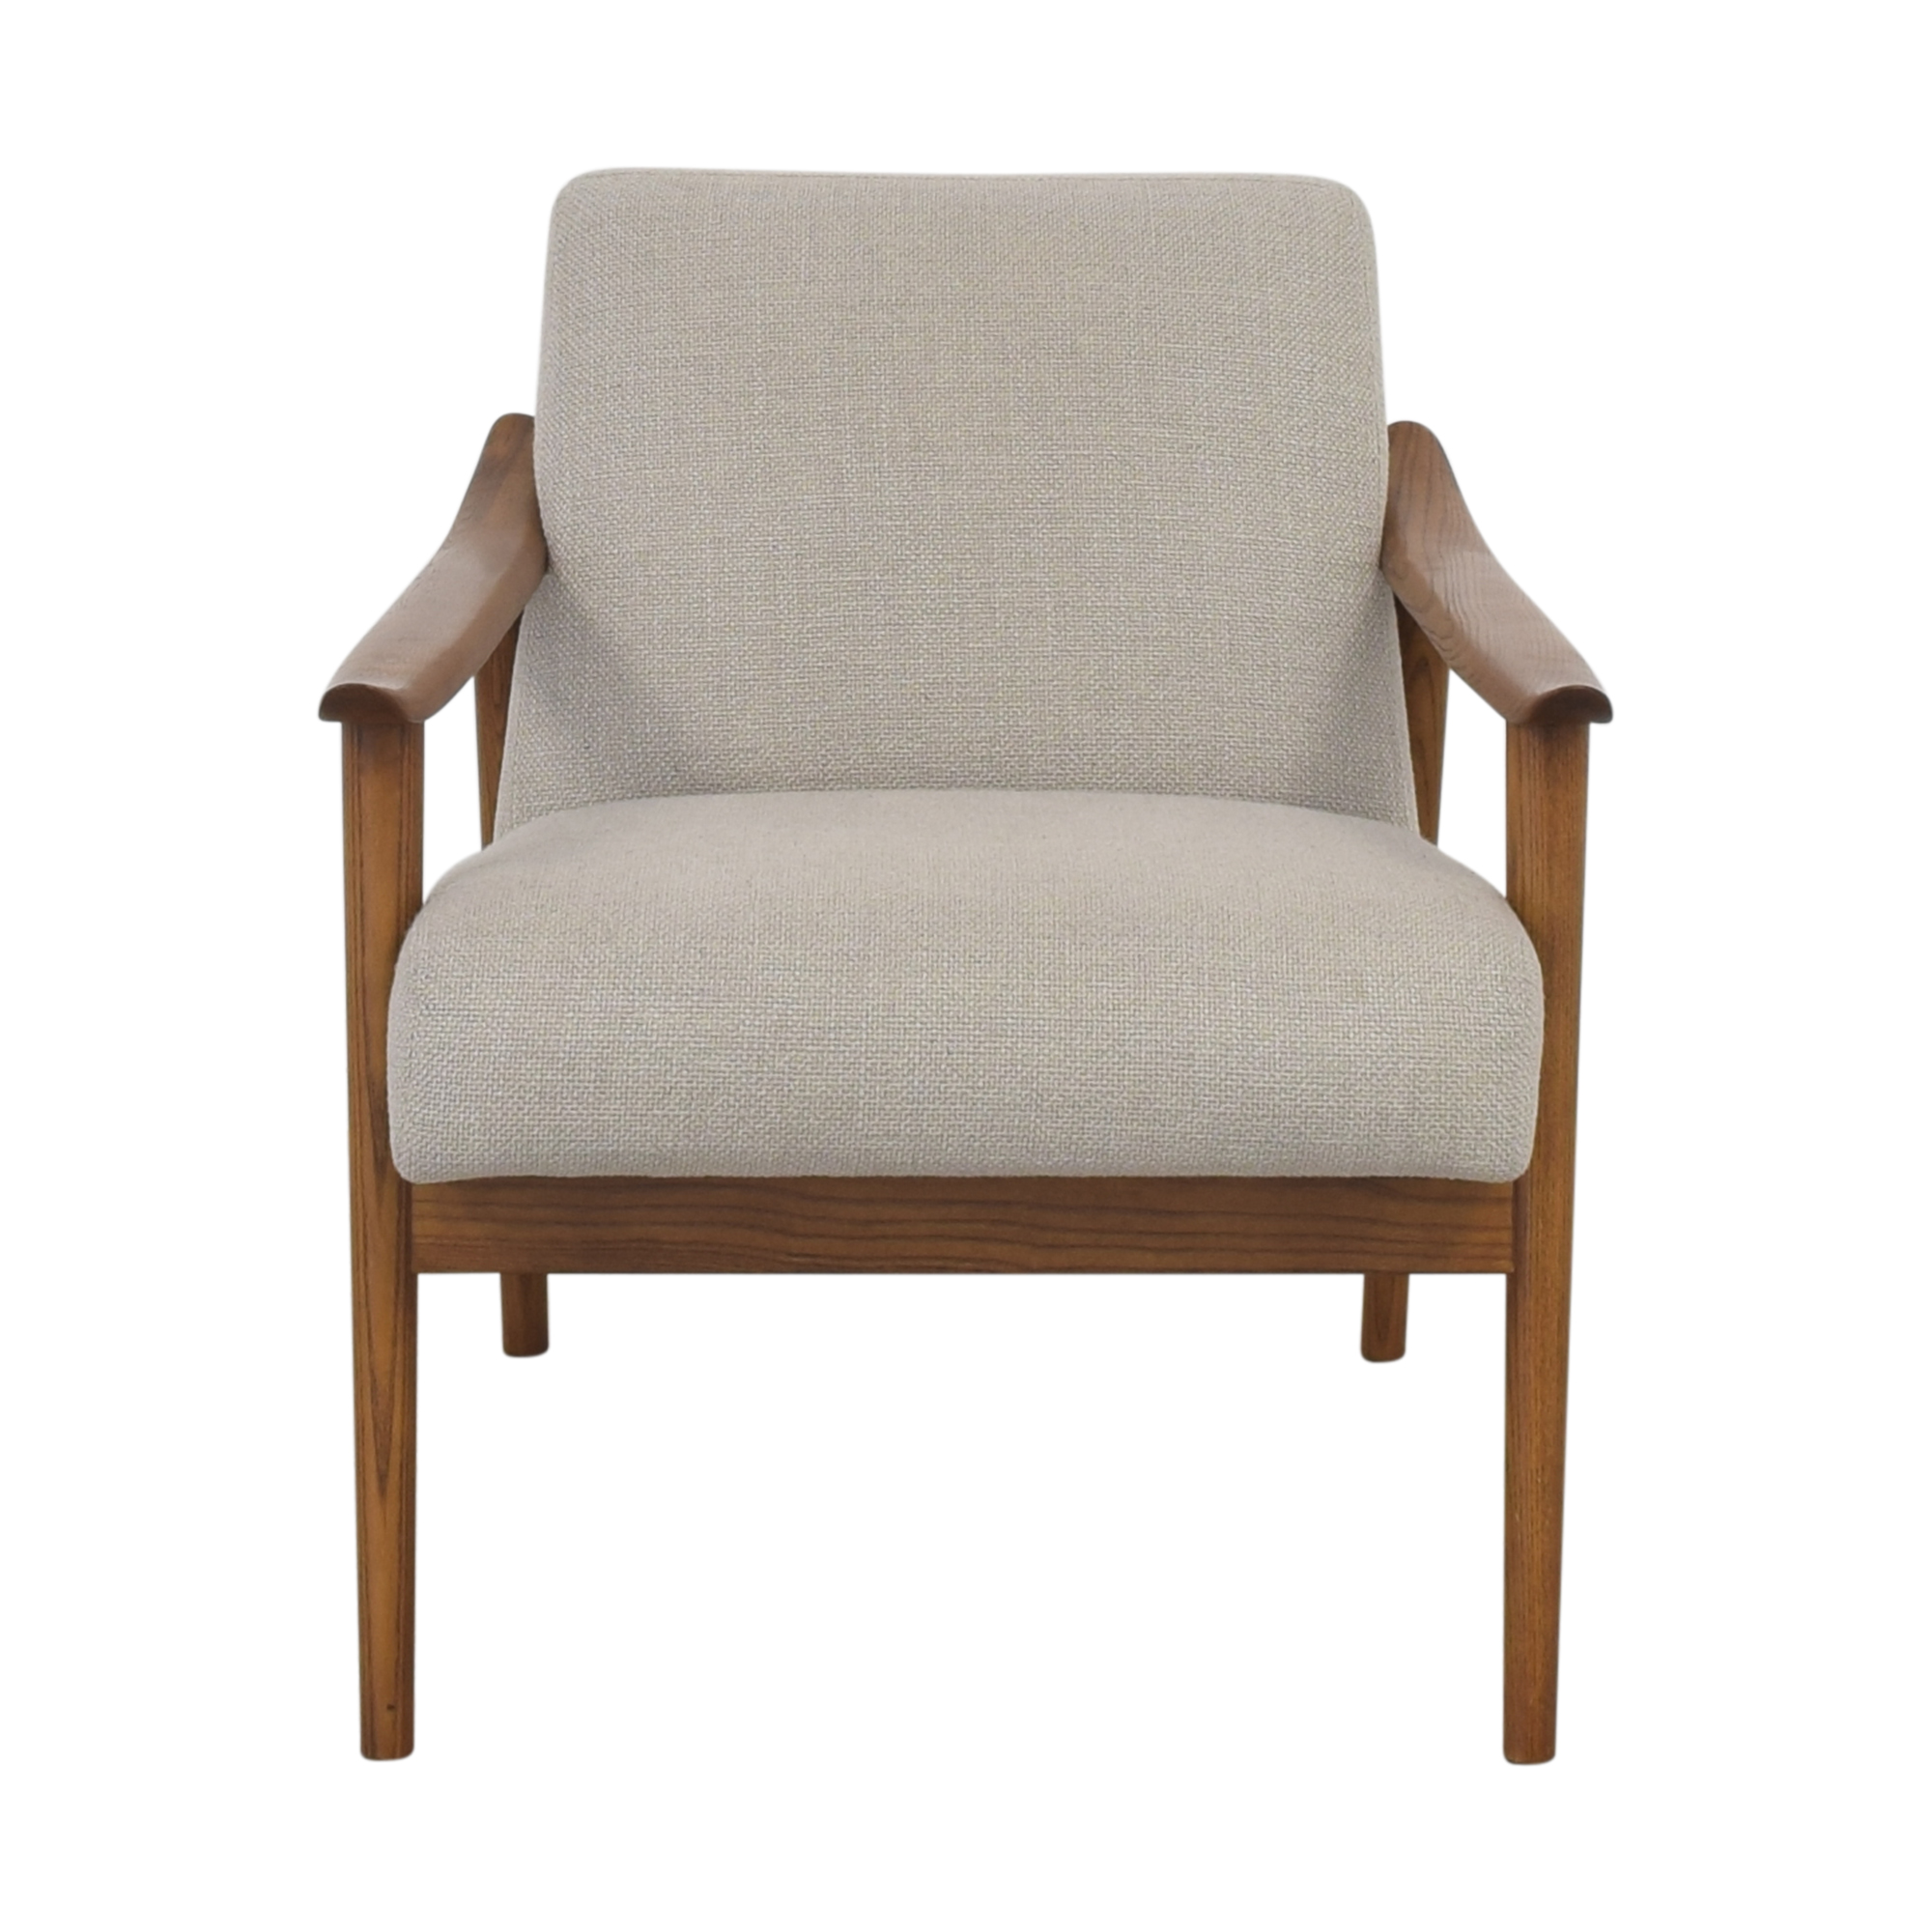 West Elm Mid-Century Show Wood Chair / Chairs